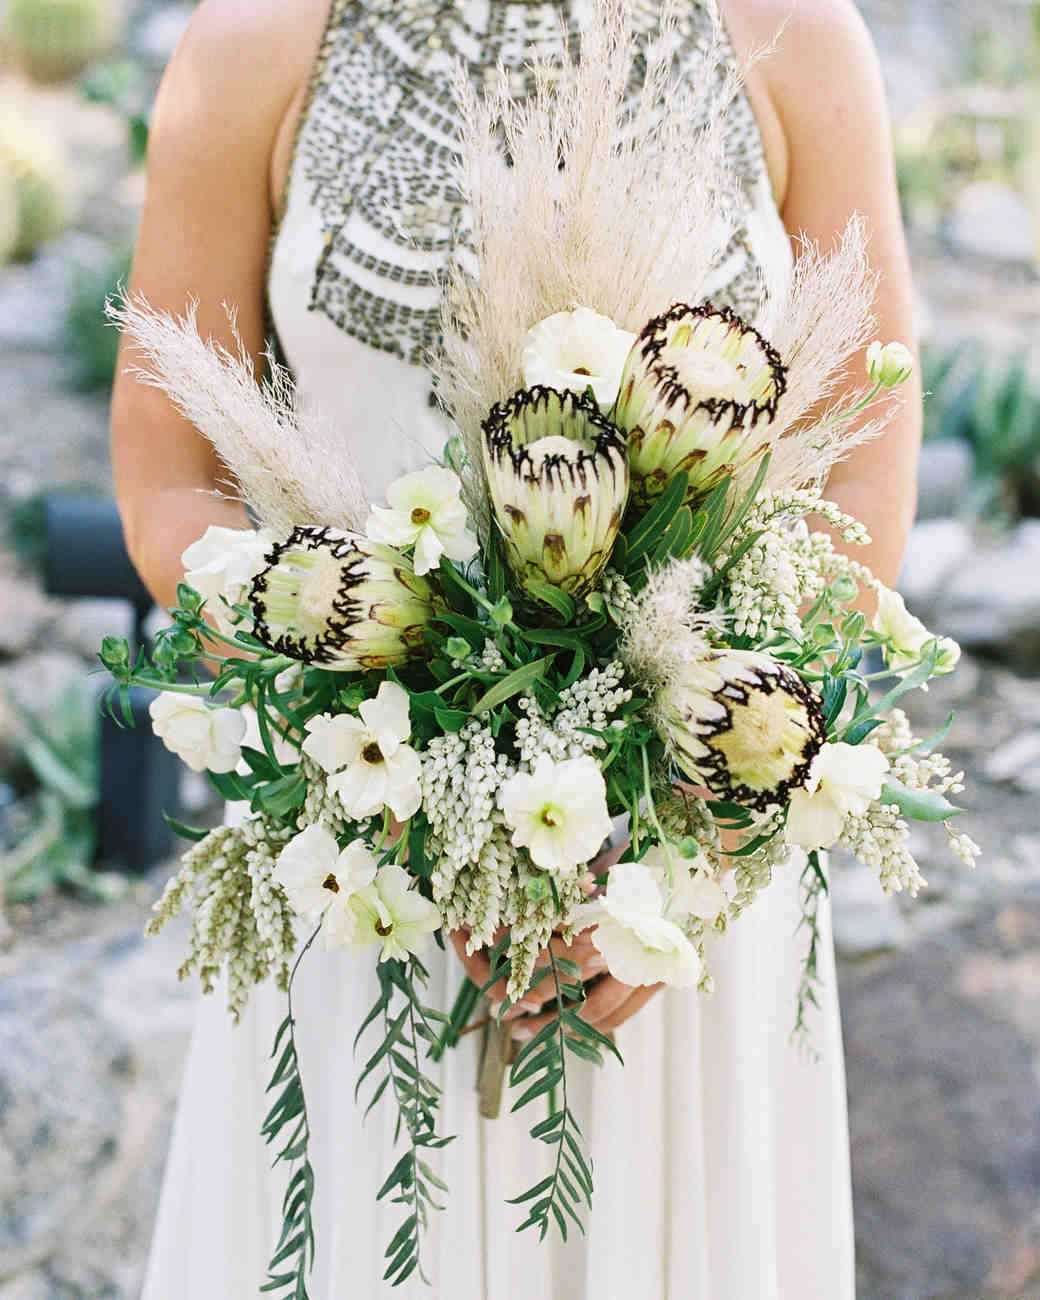 A Cool, Eclectic Wedding In The California Desert